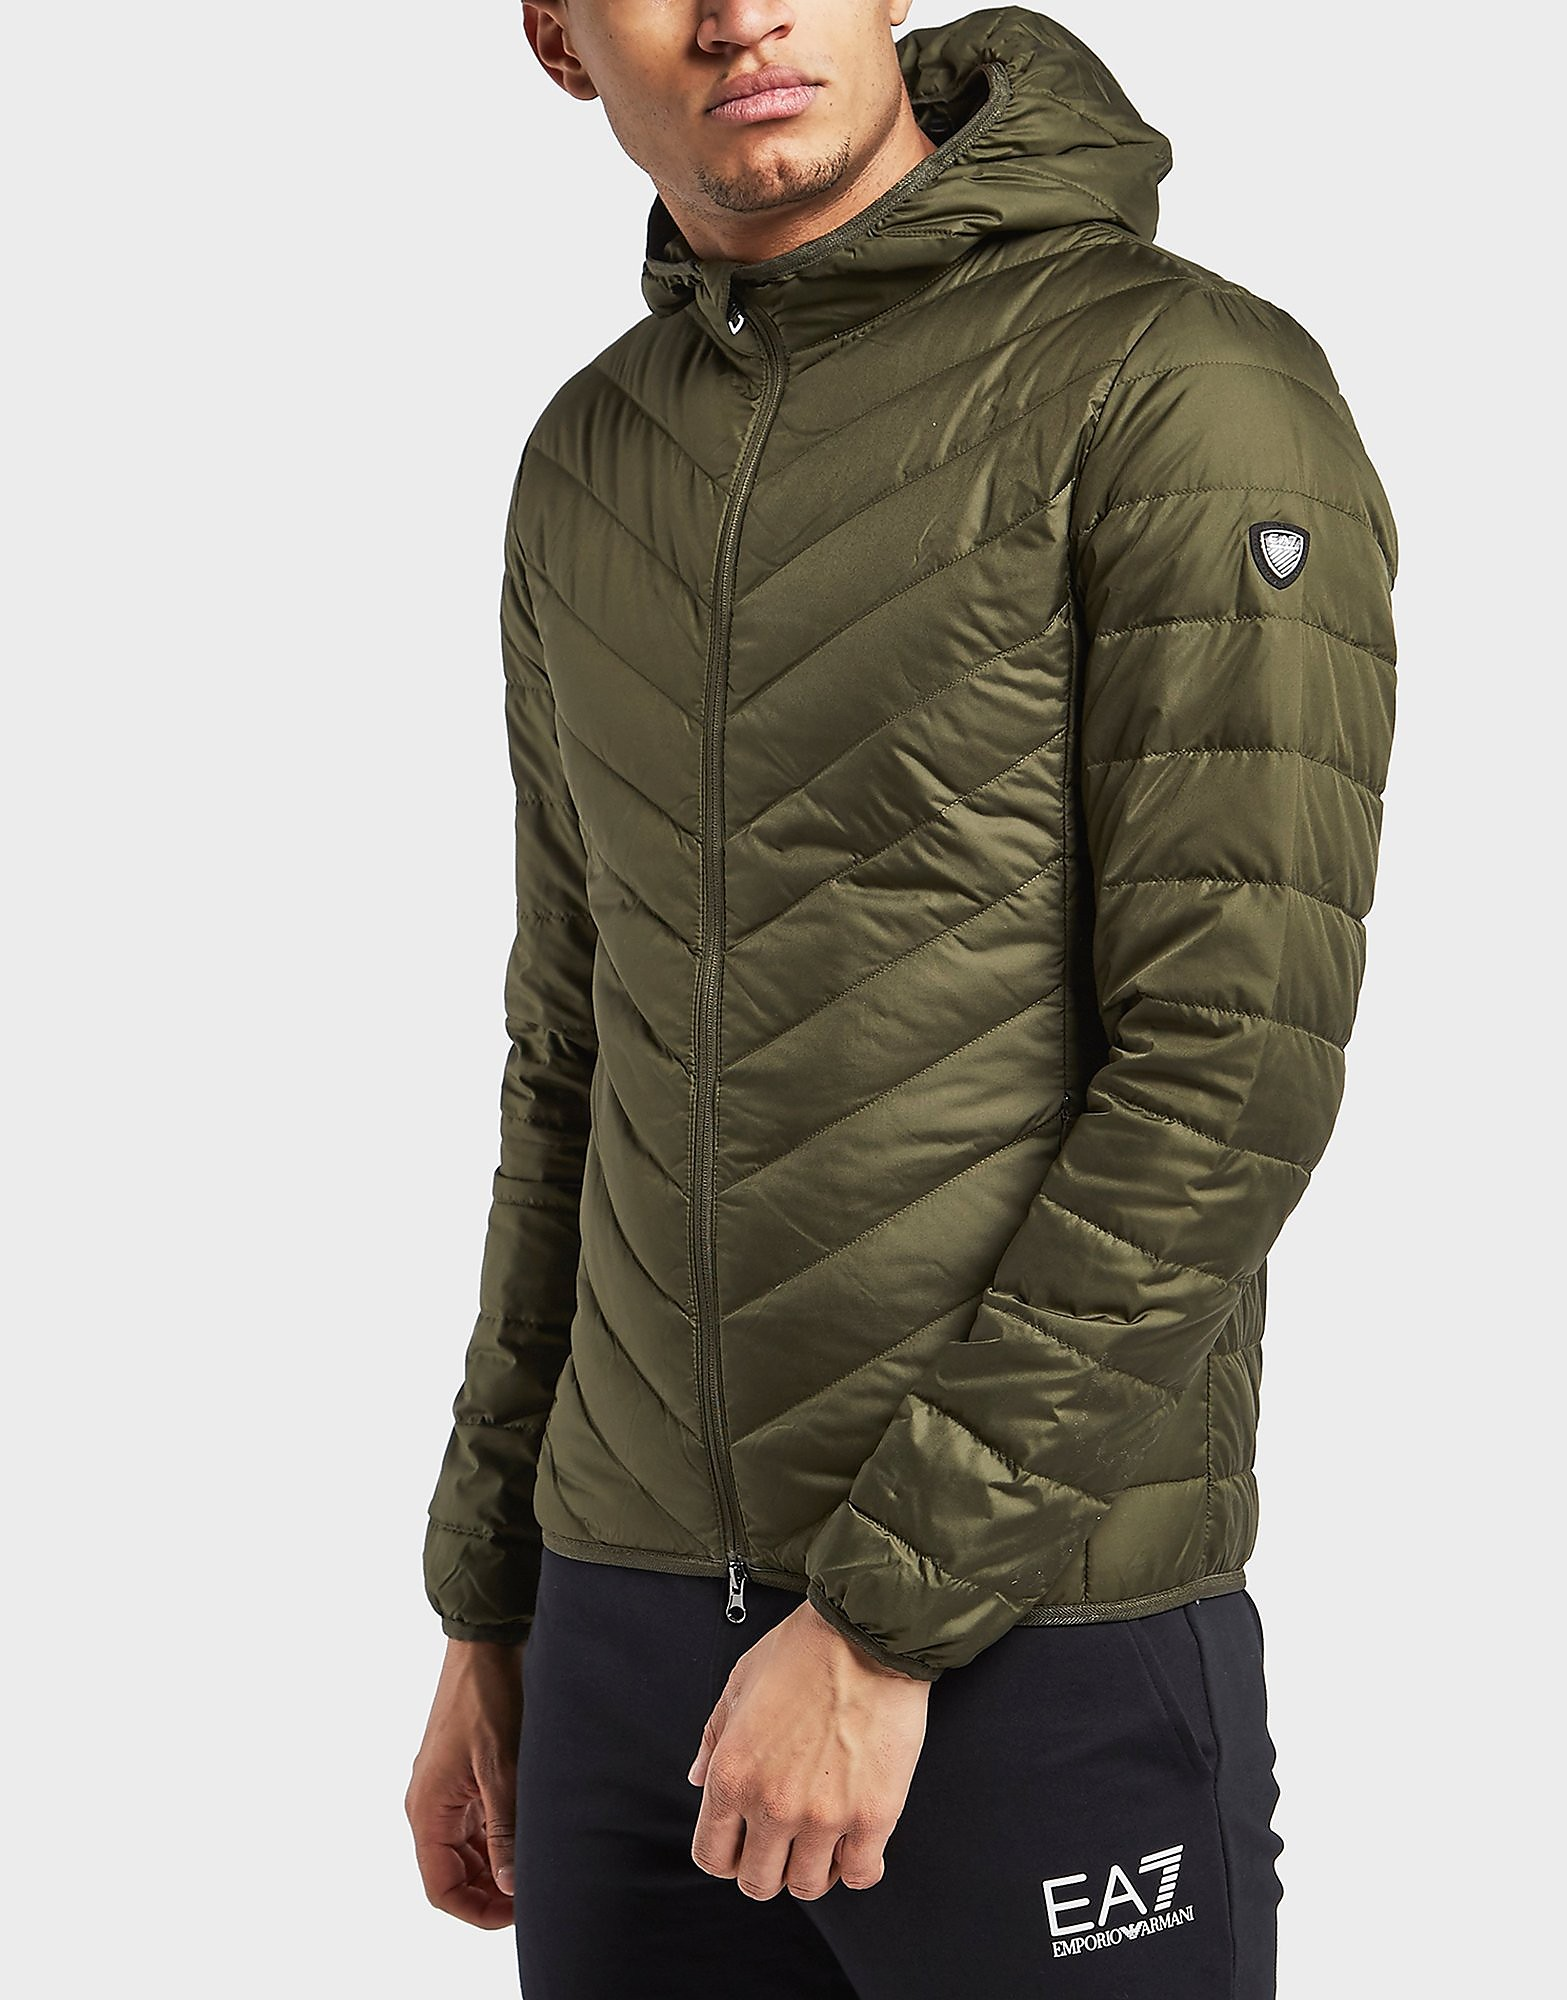 Emporio Armani EA7 Chevron Down Padded Jacket